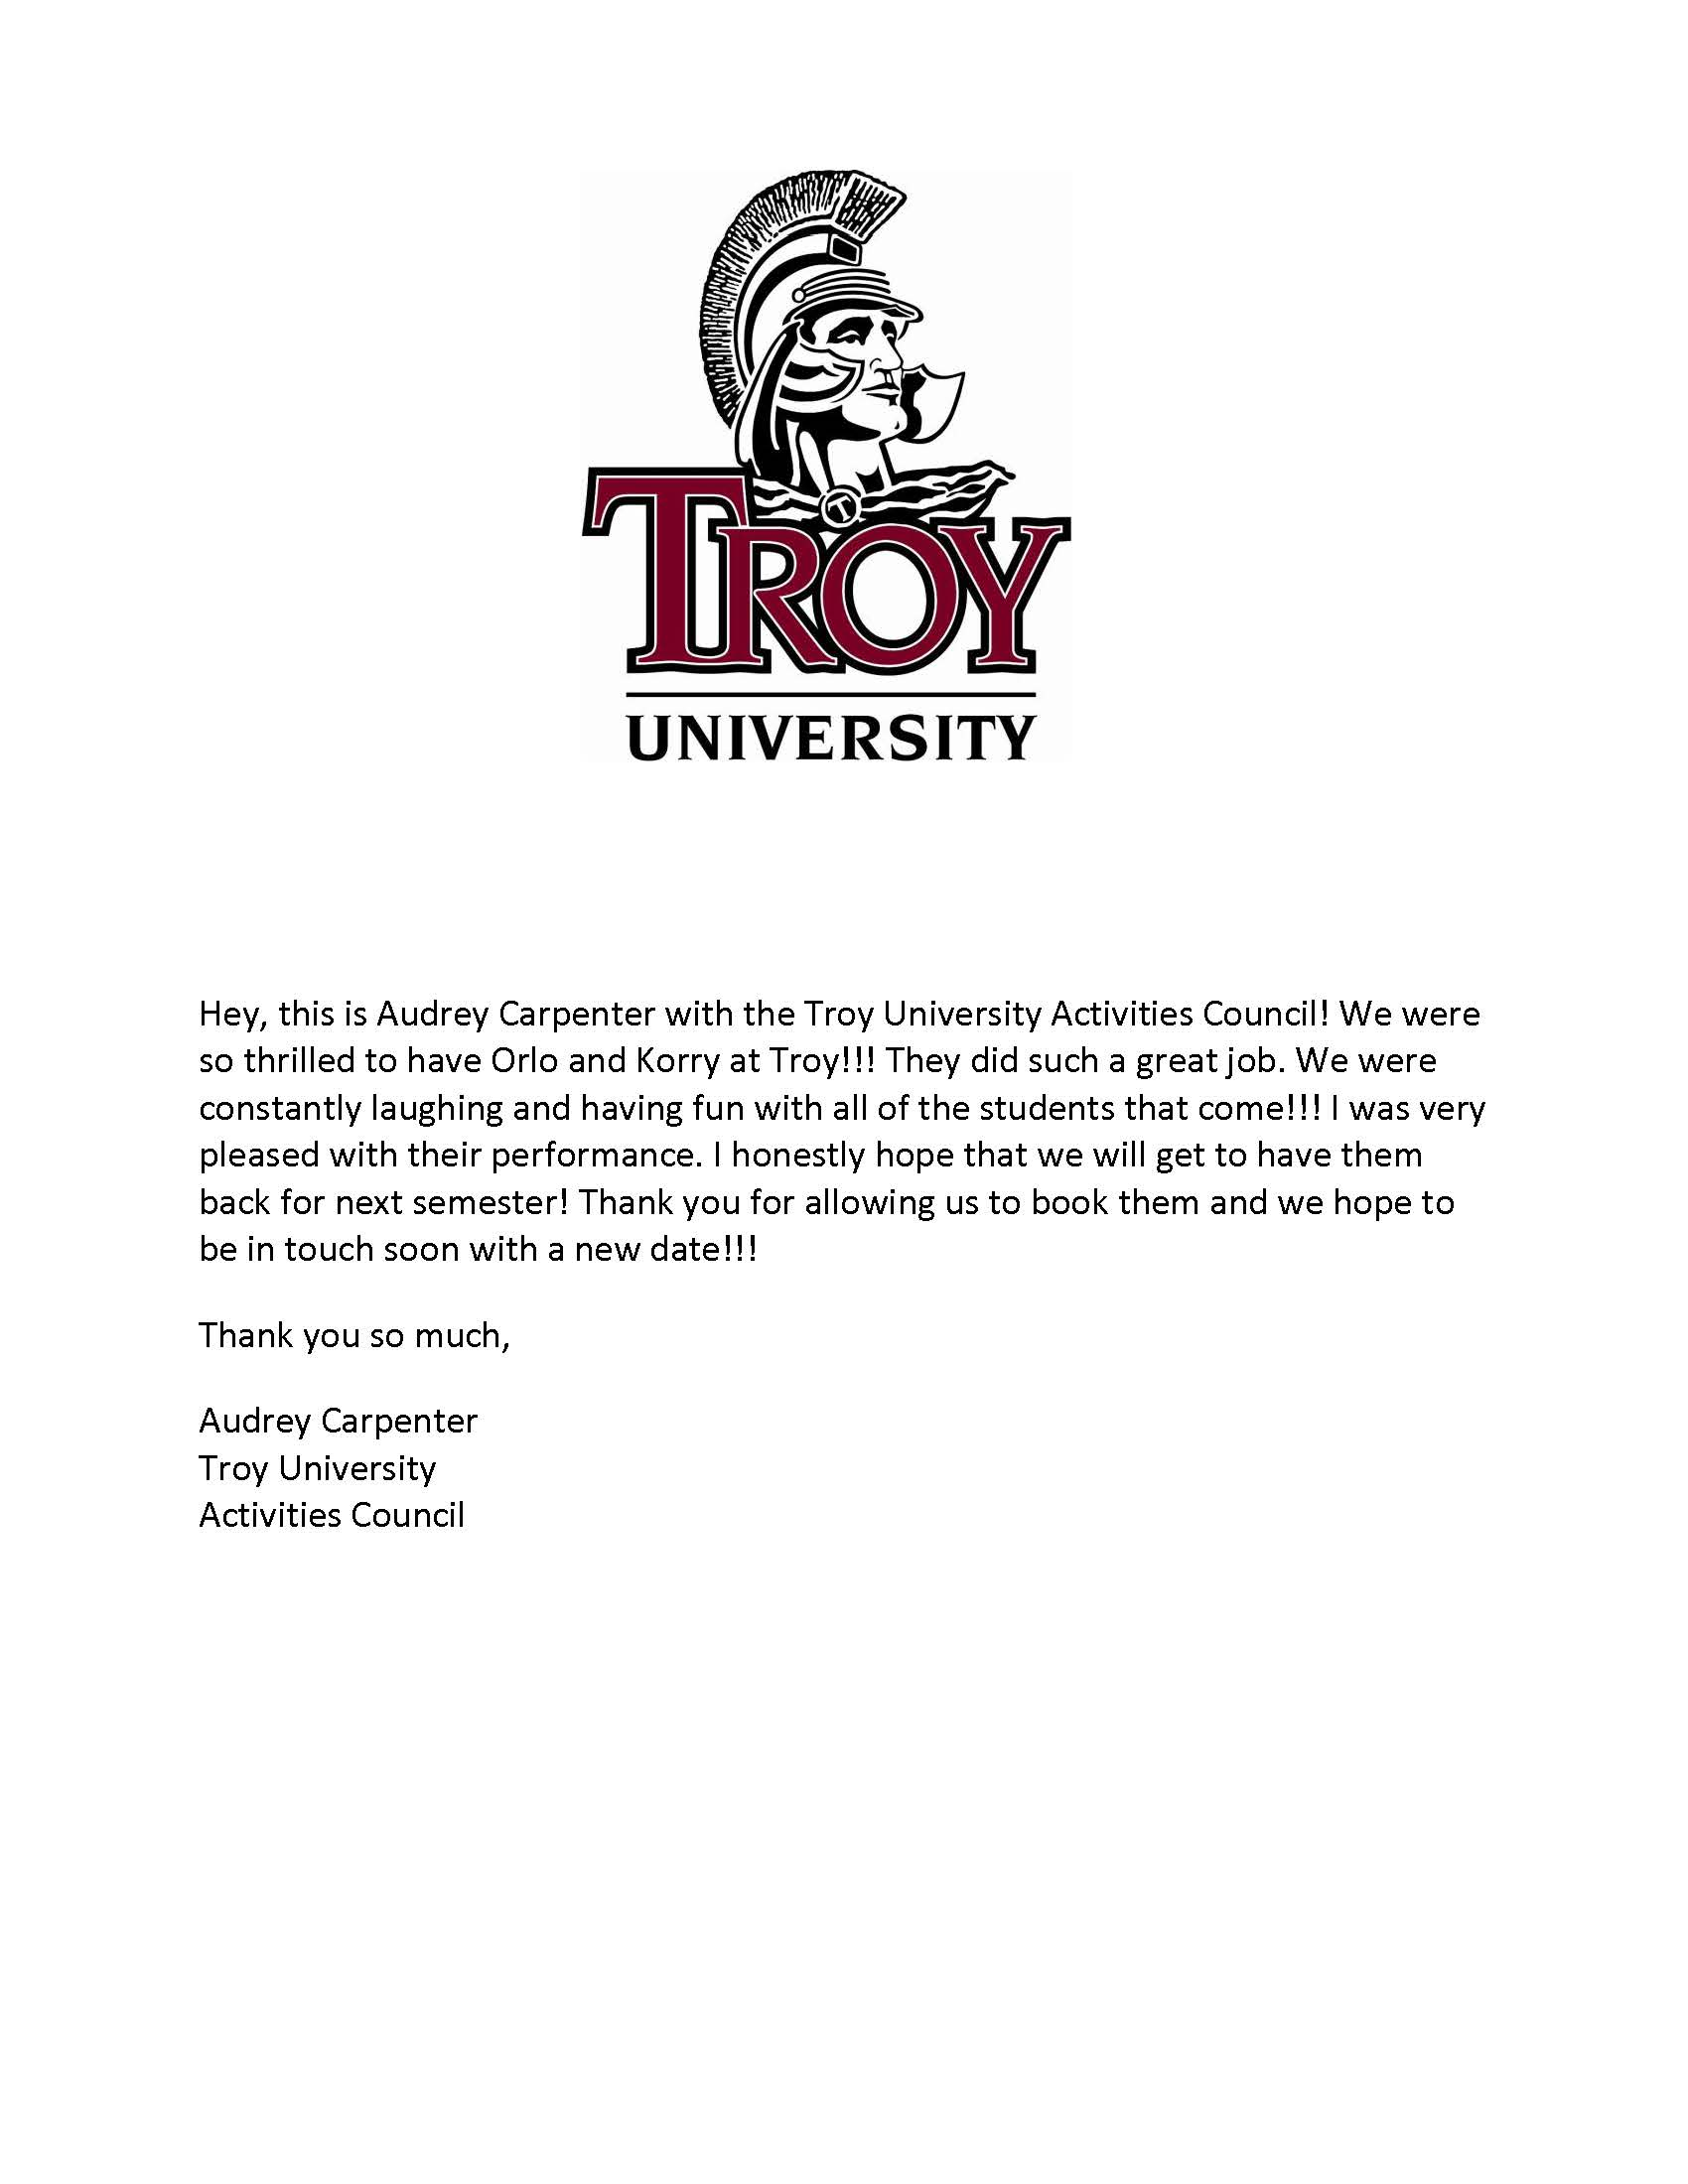 Game Show - 4.24.17 - Troy University